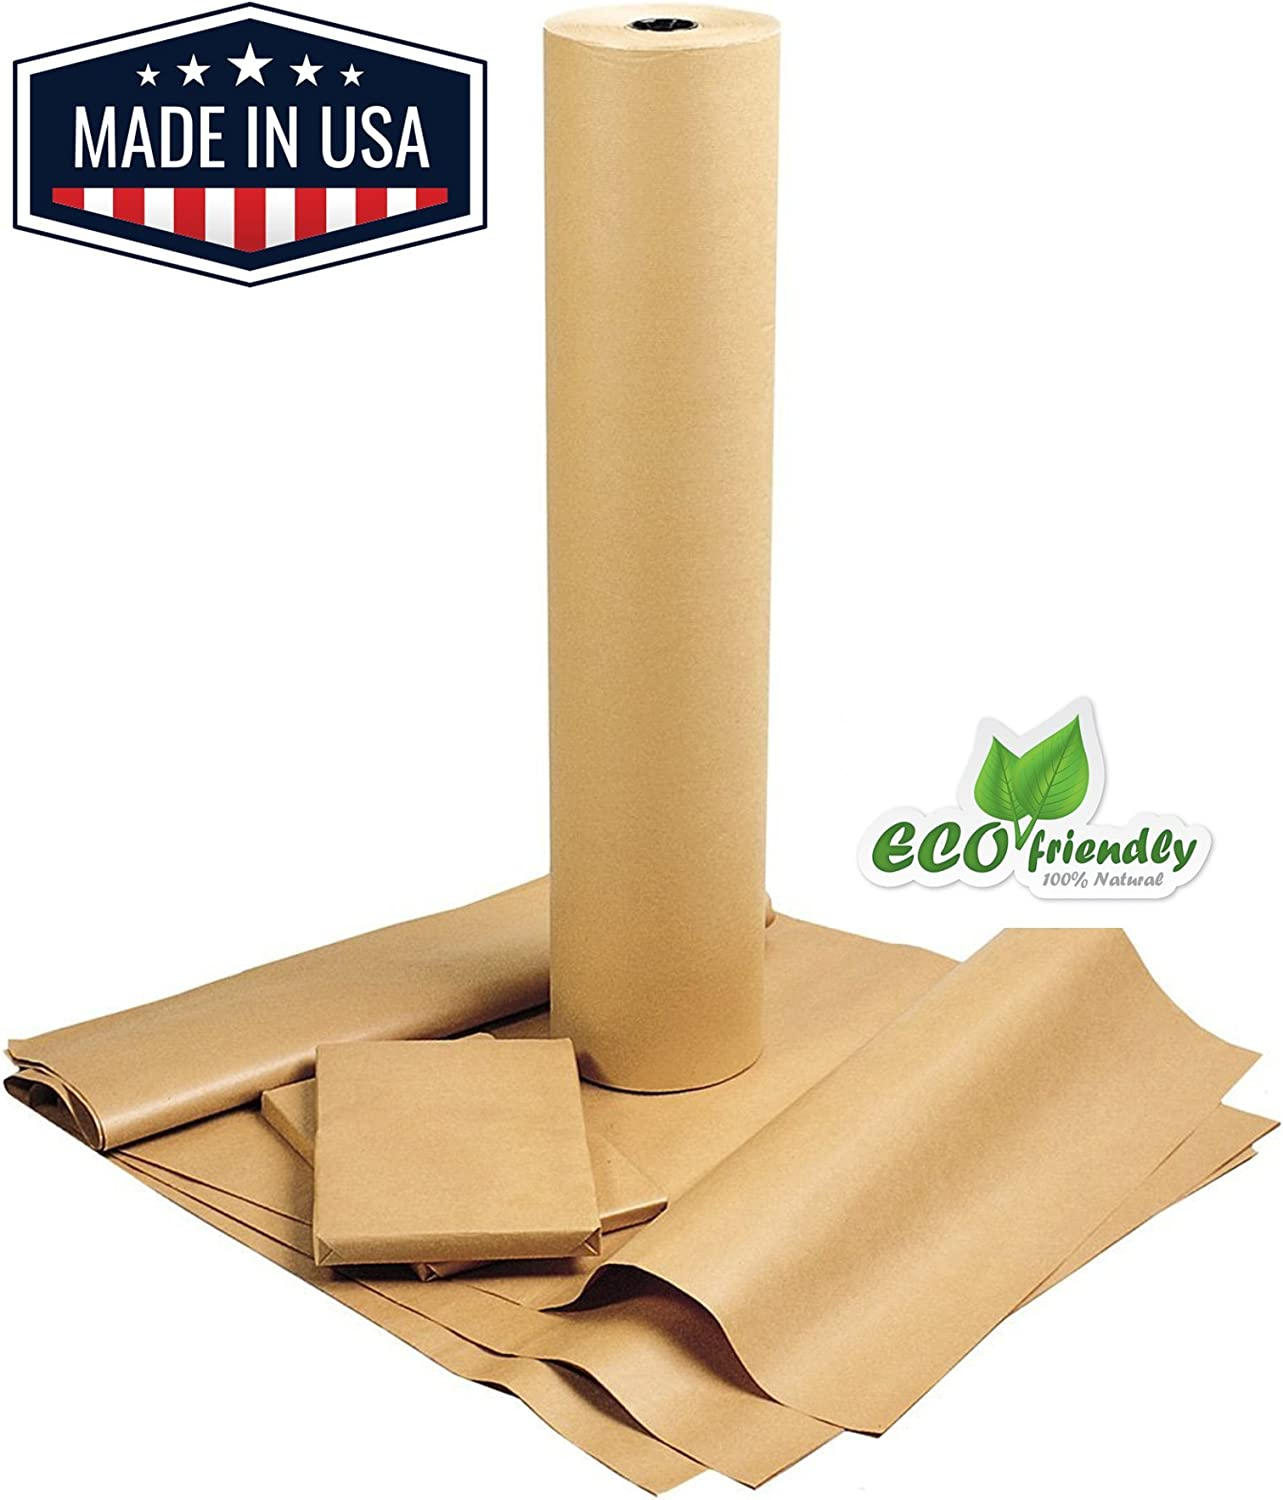 """American Made Brown Kraft Paper Jumbo Roll 17.75"""" x 2400"""" (200ft) Ideal for Gift Wrapping, Art, Craft, Postal, Packing, Shipping, Floor Covering, Dunnage, Parcel, Table Runner 100% Recycled Material"""